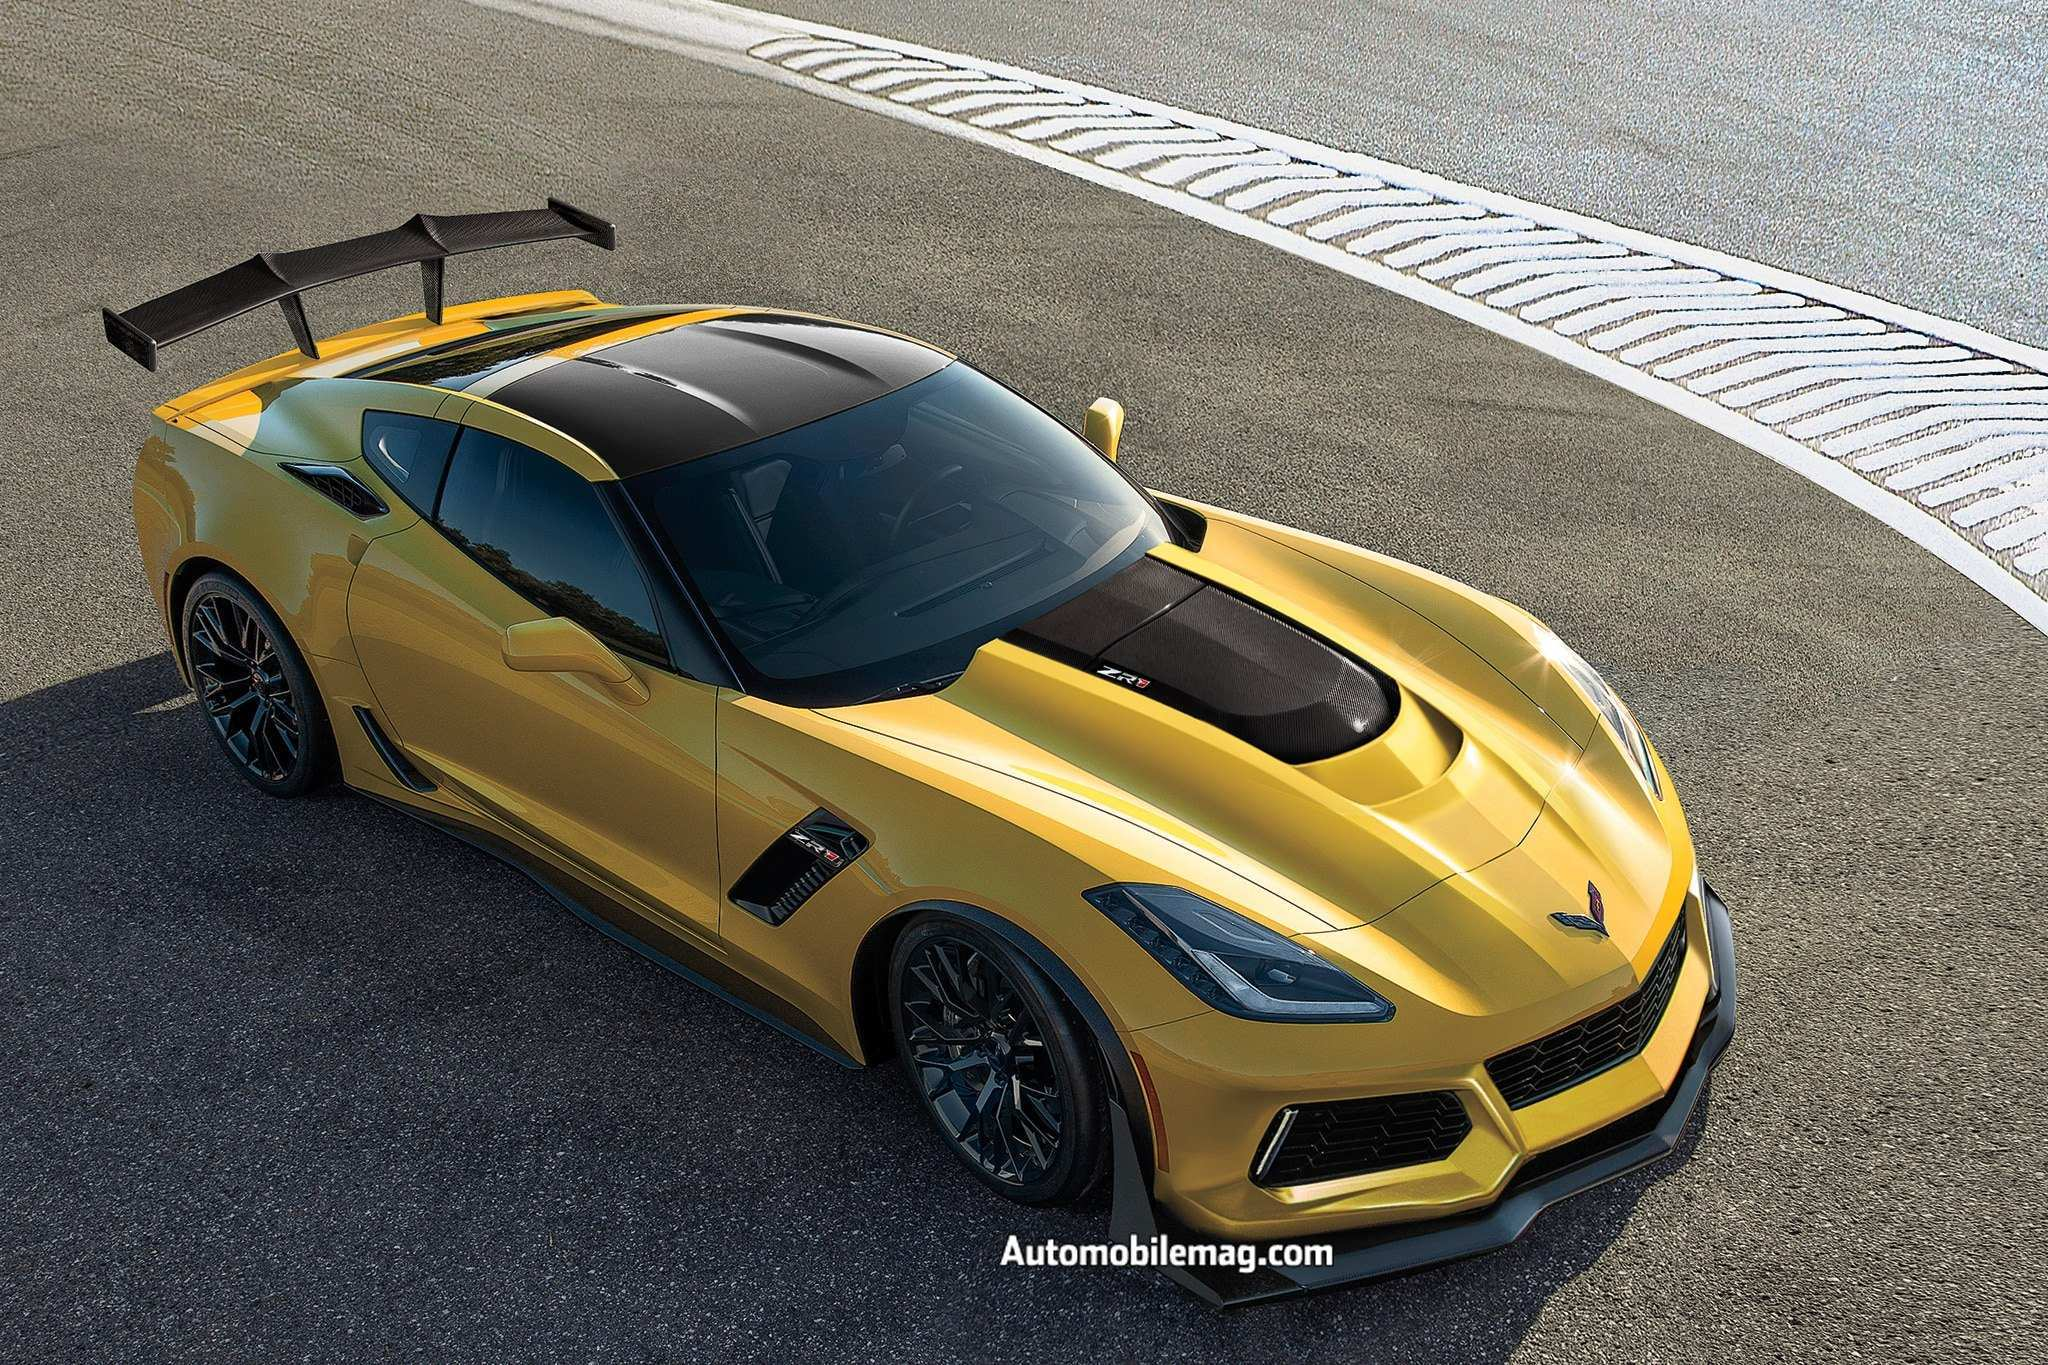 12 New 2020 Chevrolet Corvette Zora Zr1 Interior